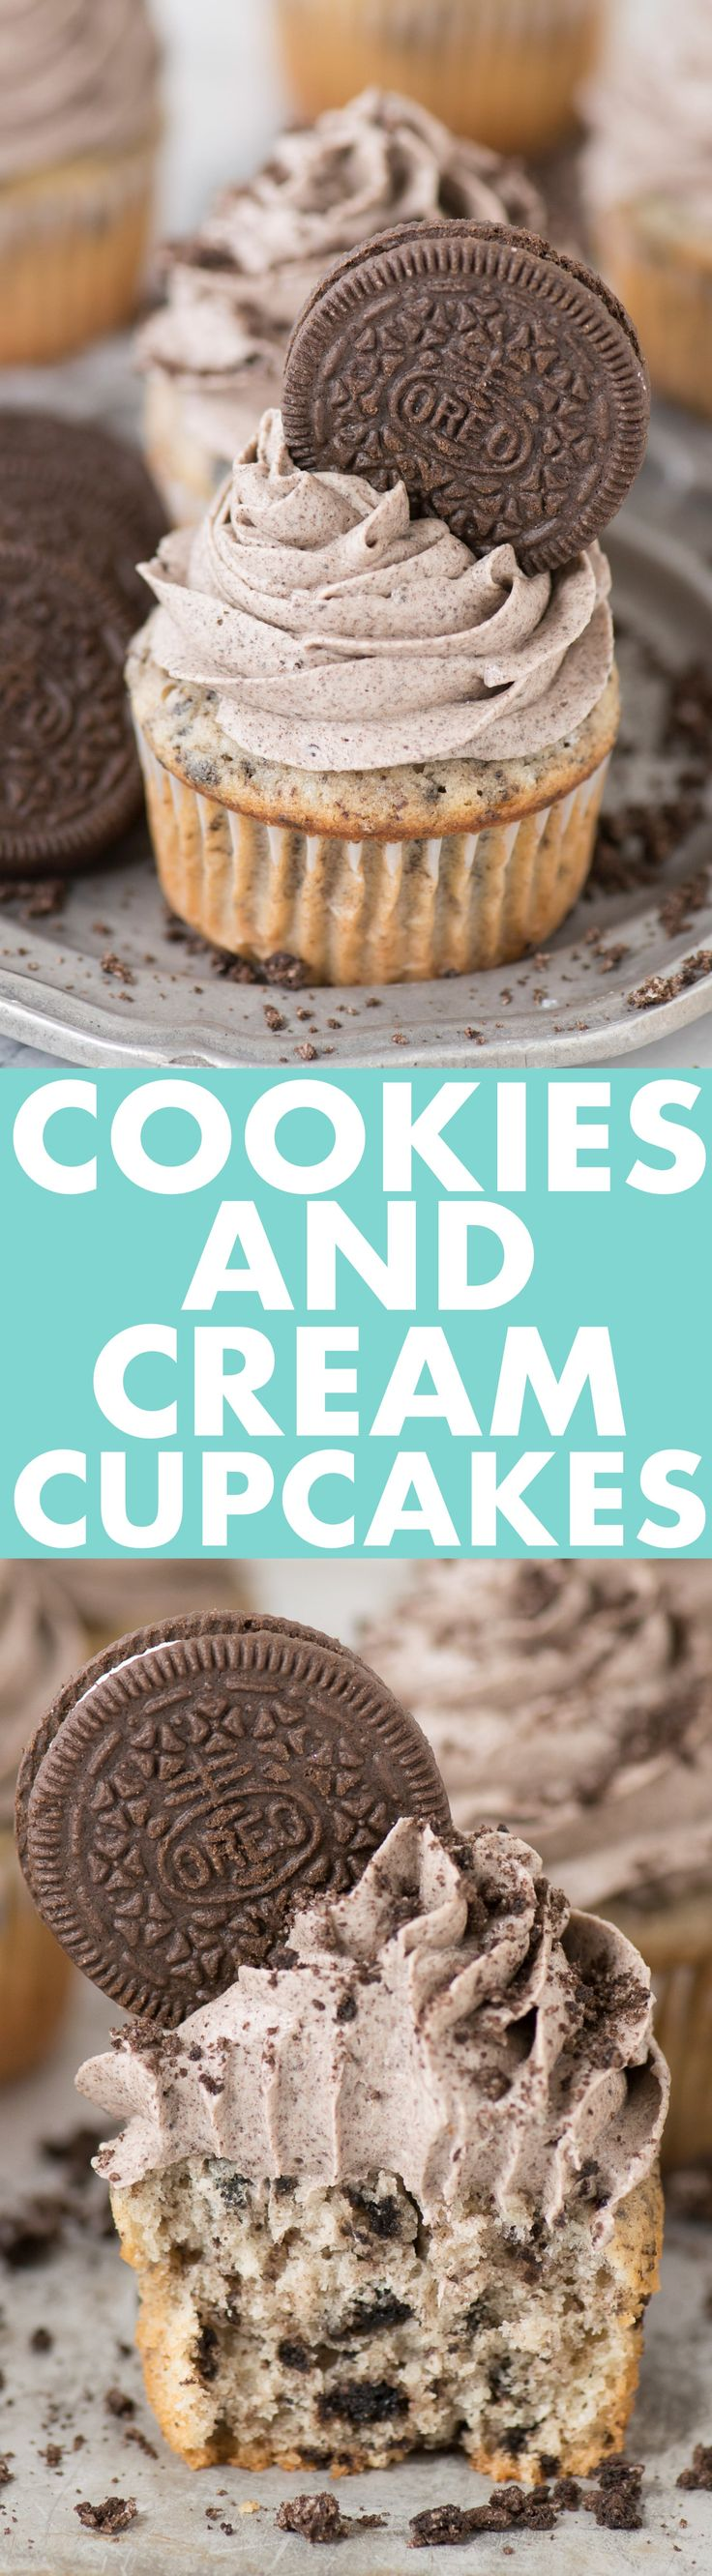 The best COOKIES AND CREAM CUPCAKES! With a cookies and cream cake base and cookies and cream buttercream. These are incredibly moist, we LOVE them!